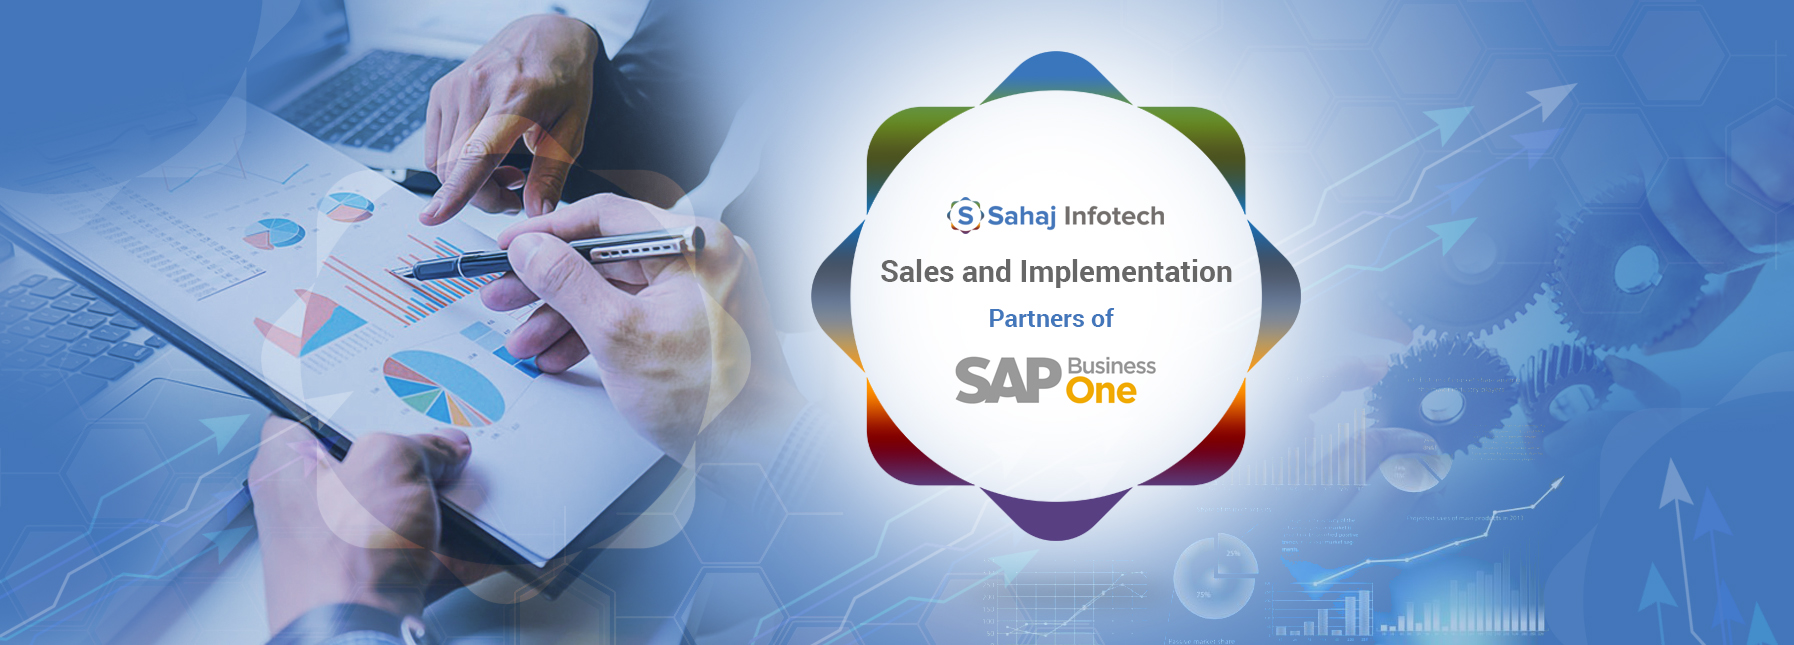 sahaj Infotech Sales and Implementation Sap